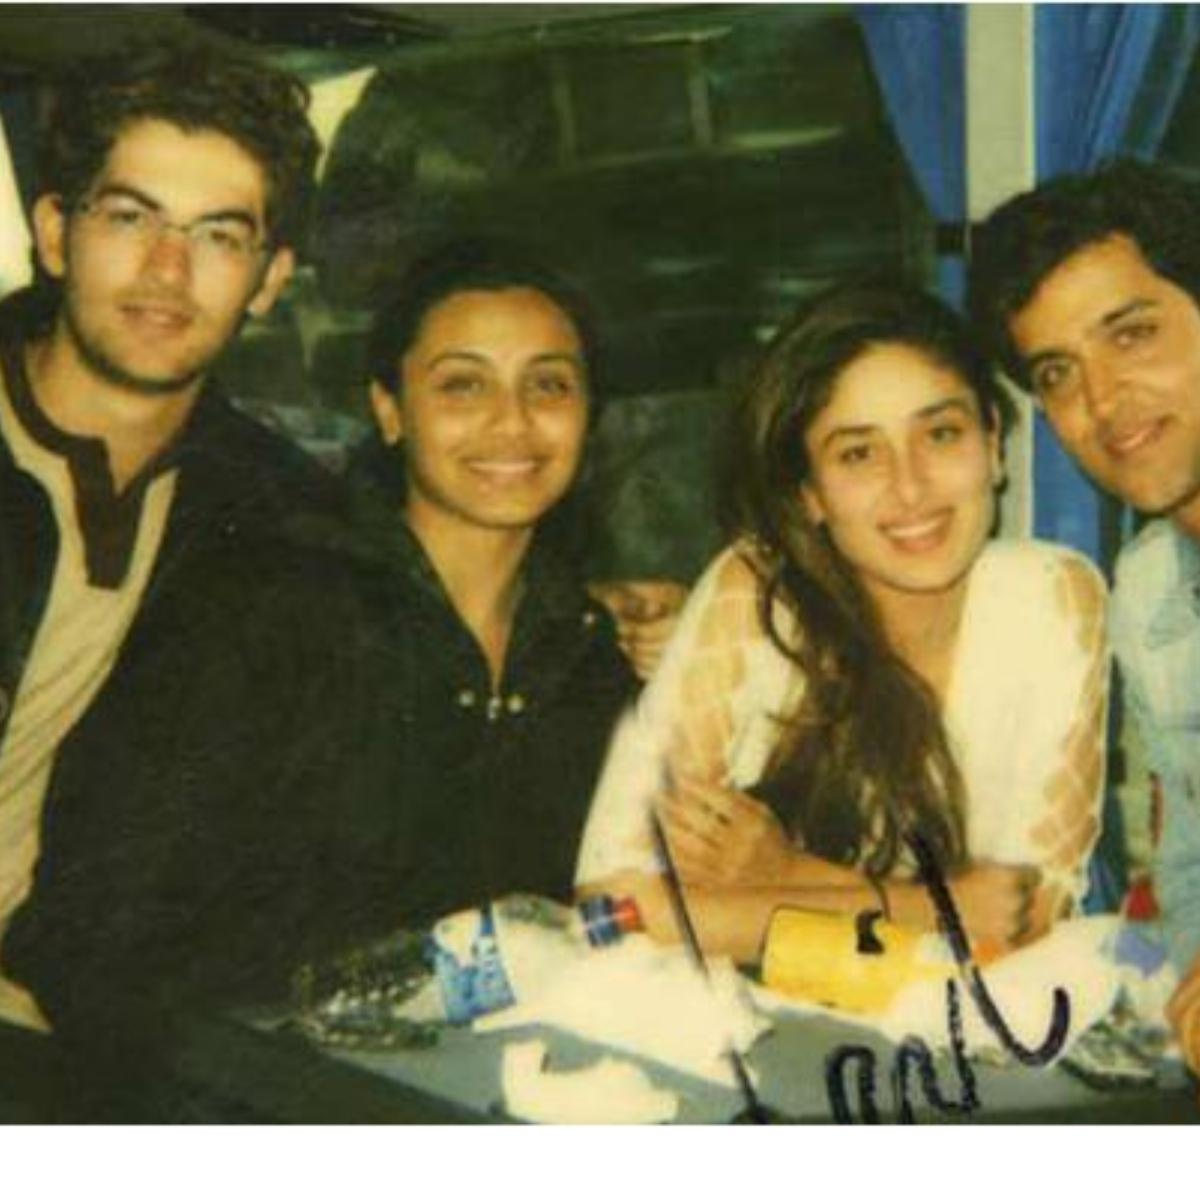 Kareena poses with her co-stars Hrithik, Rani and Neil Nitin Mukesh